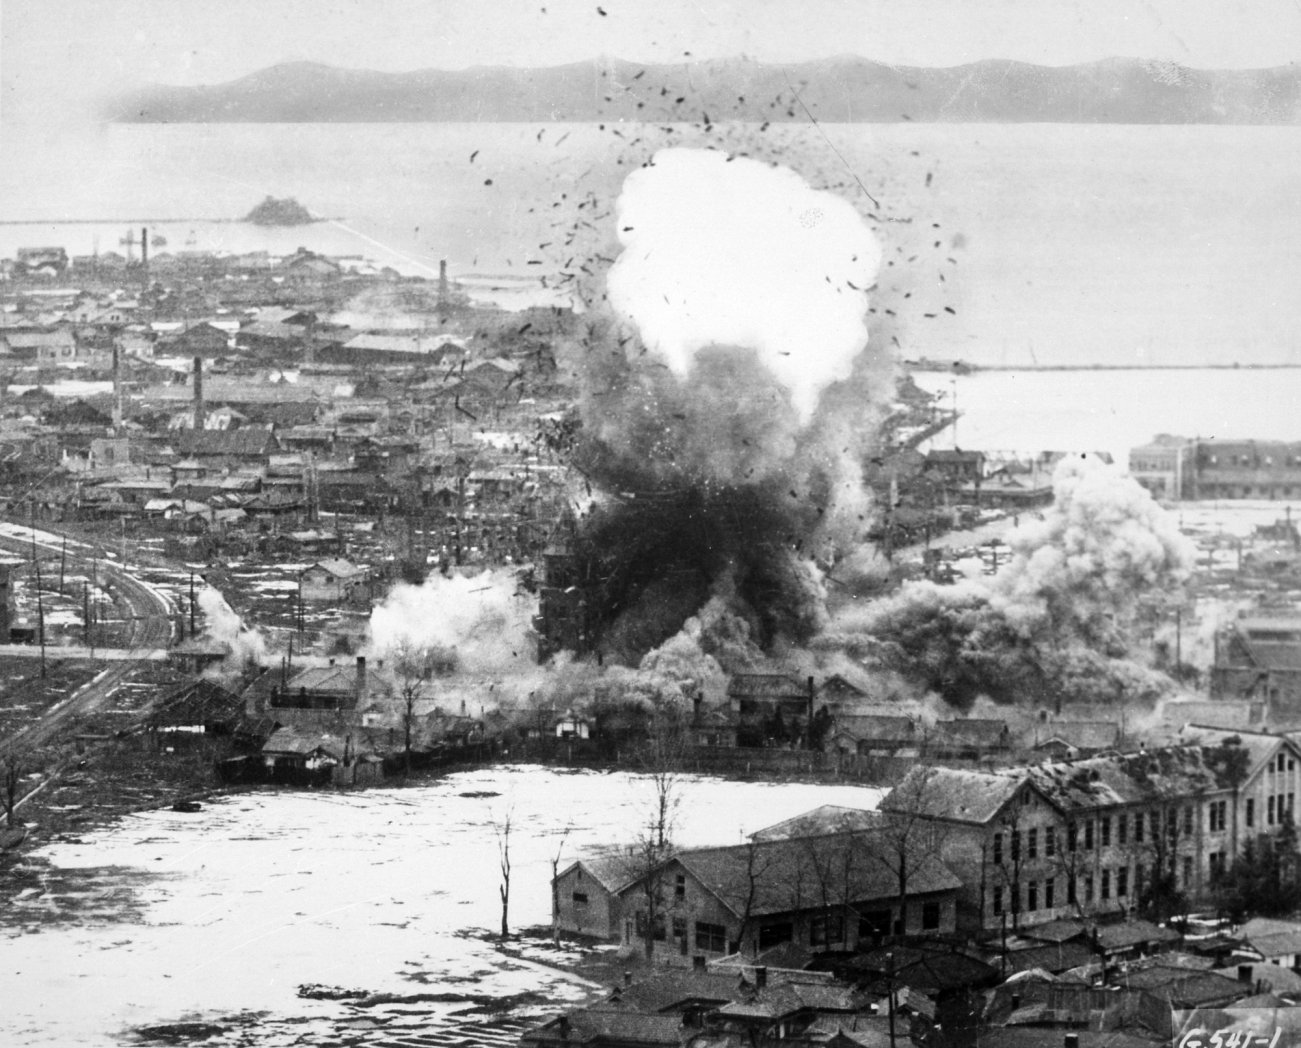 America's Soldiers Were Not Prepared For The Korean War's Savagery